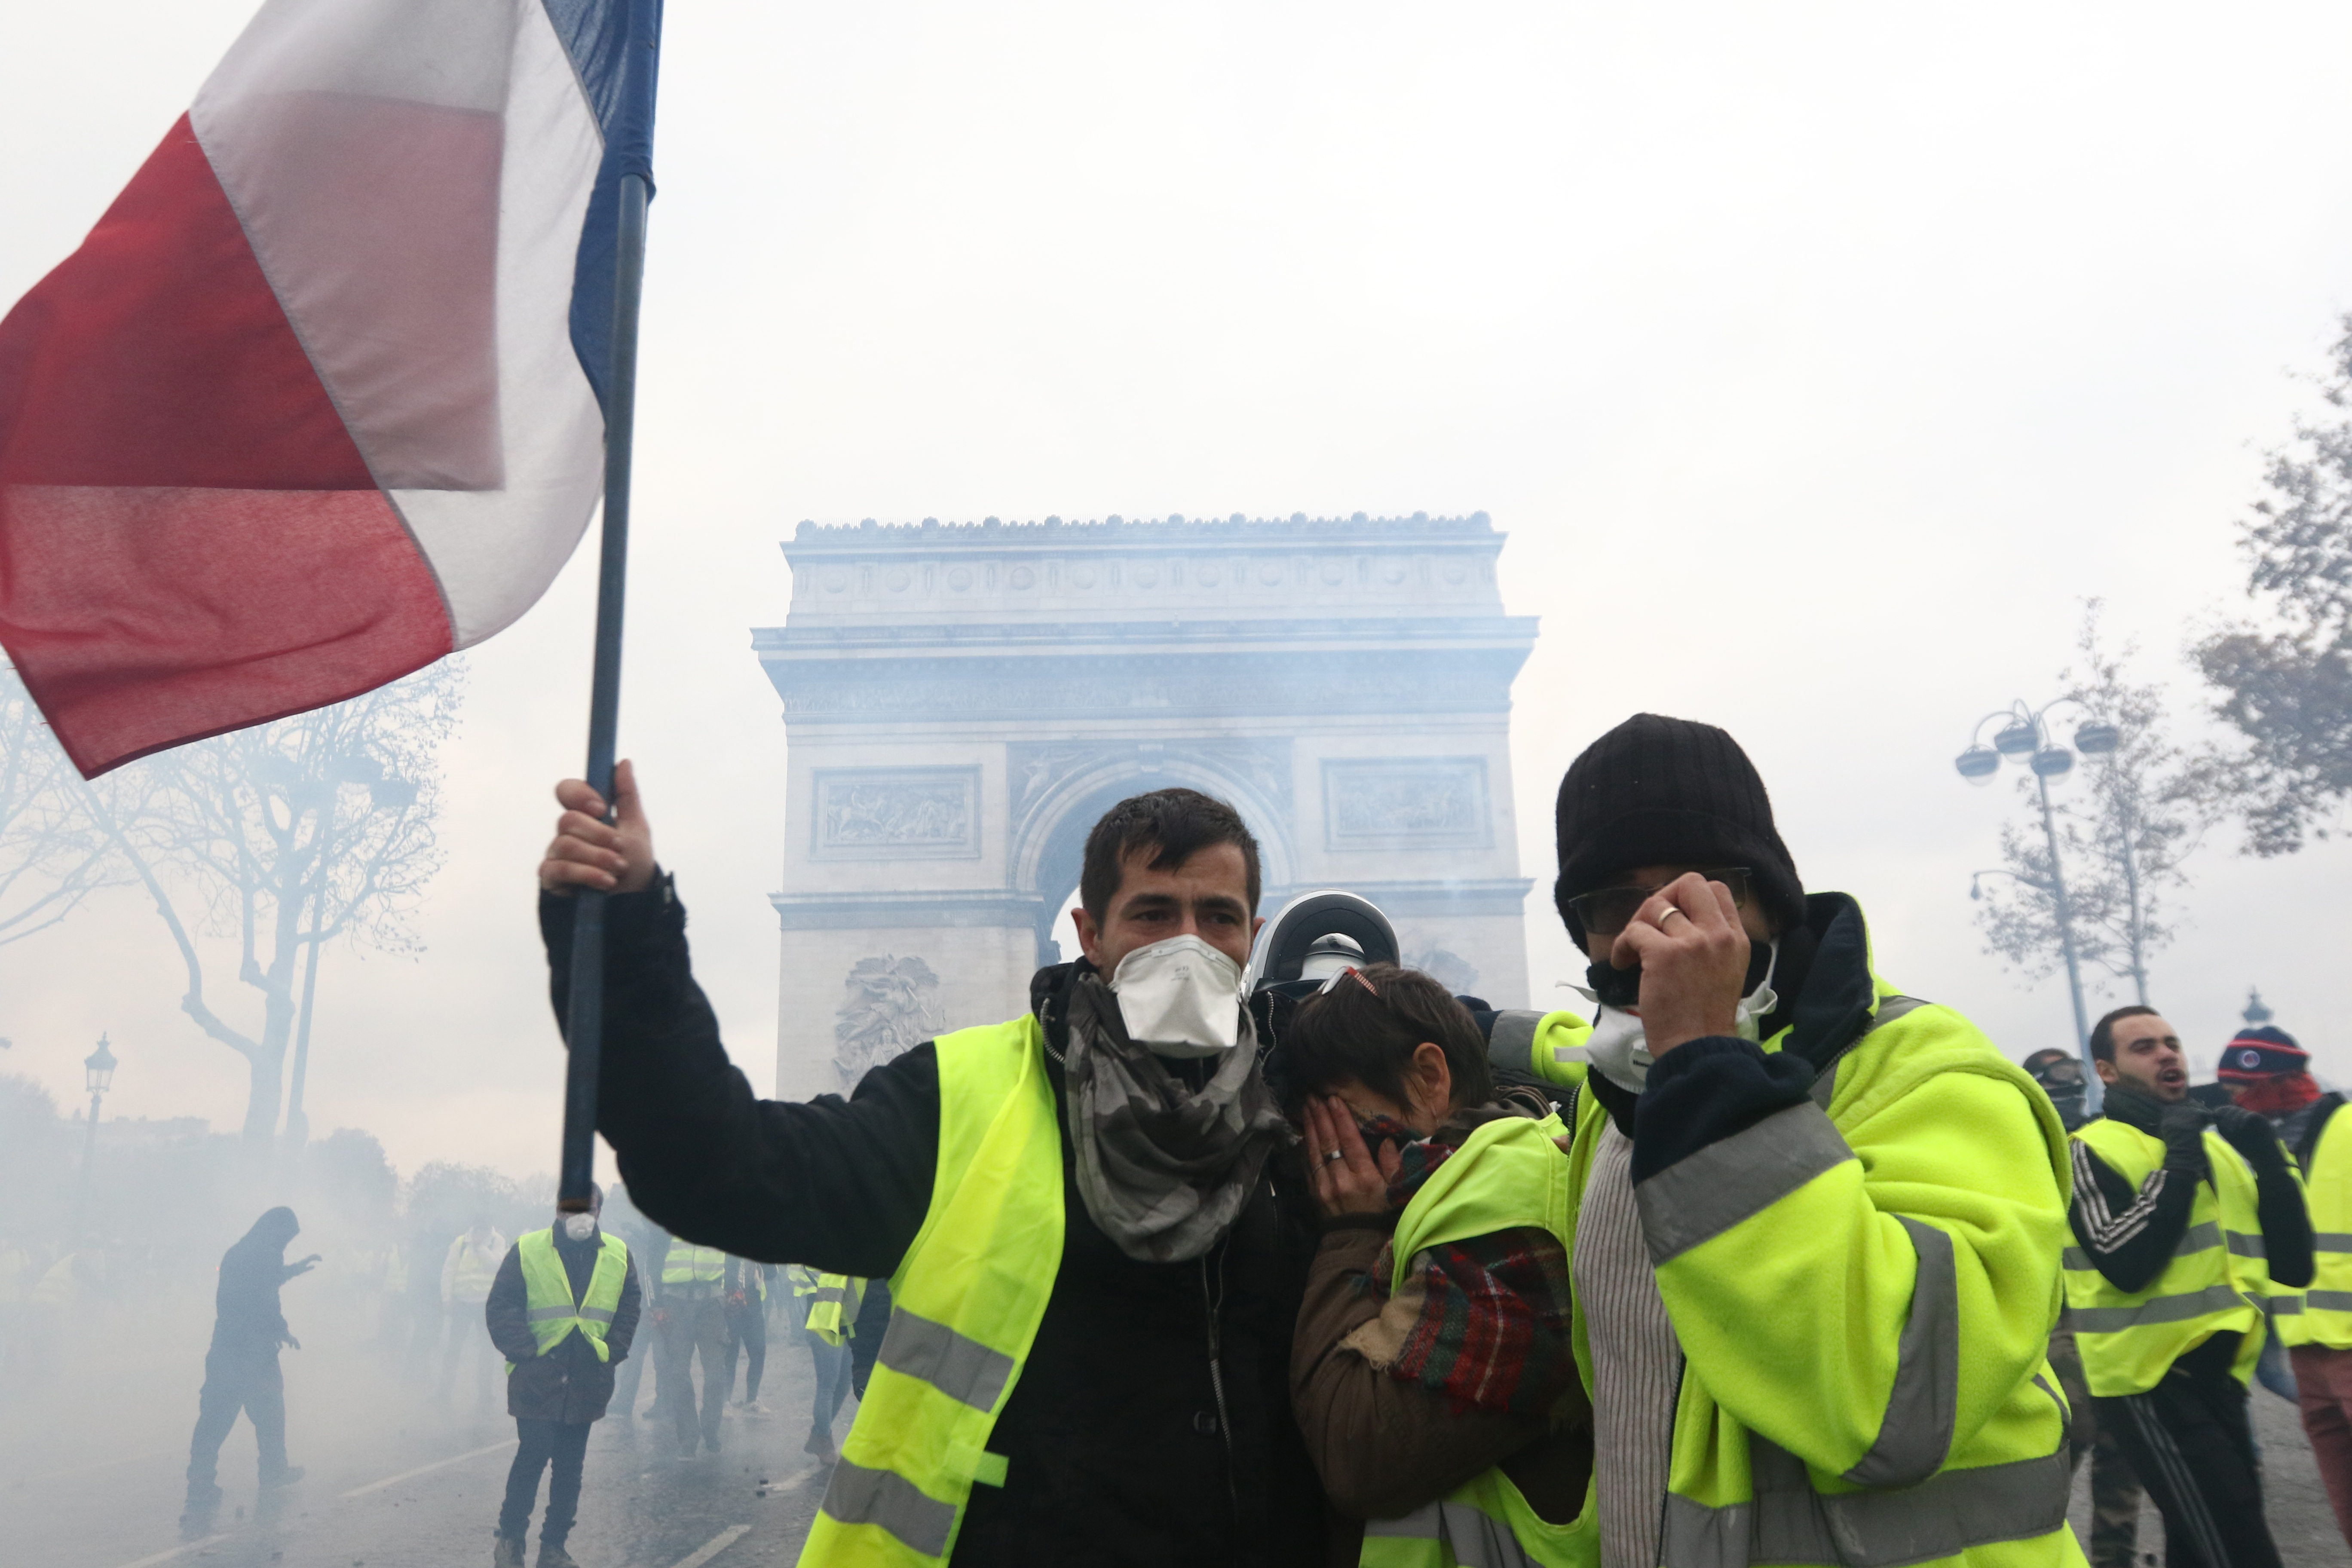 Yellow vest protesters clash with riot police as part of demonstration against rising fuel taxes near Arc de triomphe de l'Etoile in Paris, France on December 01, 2018.